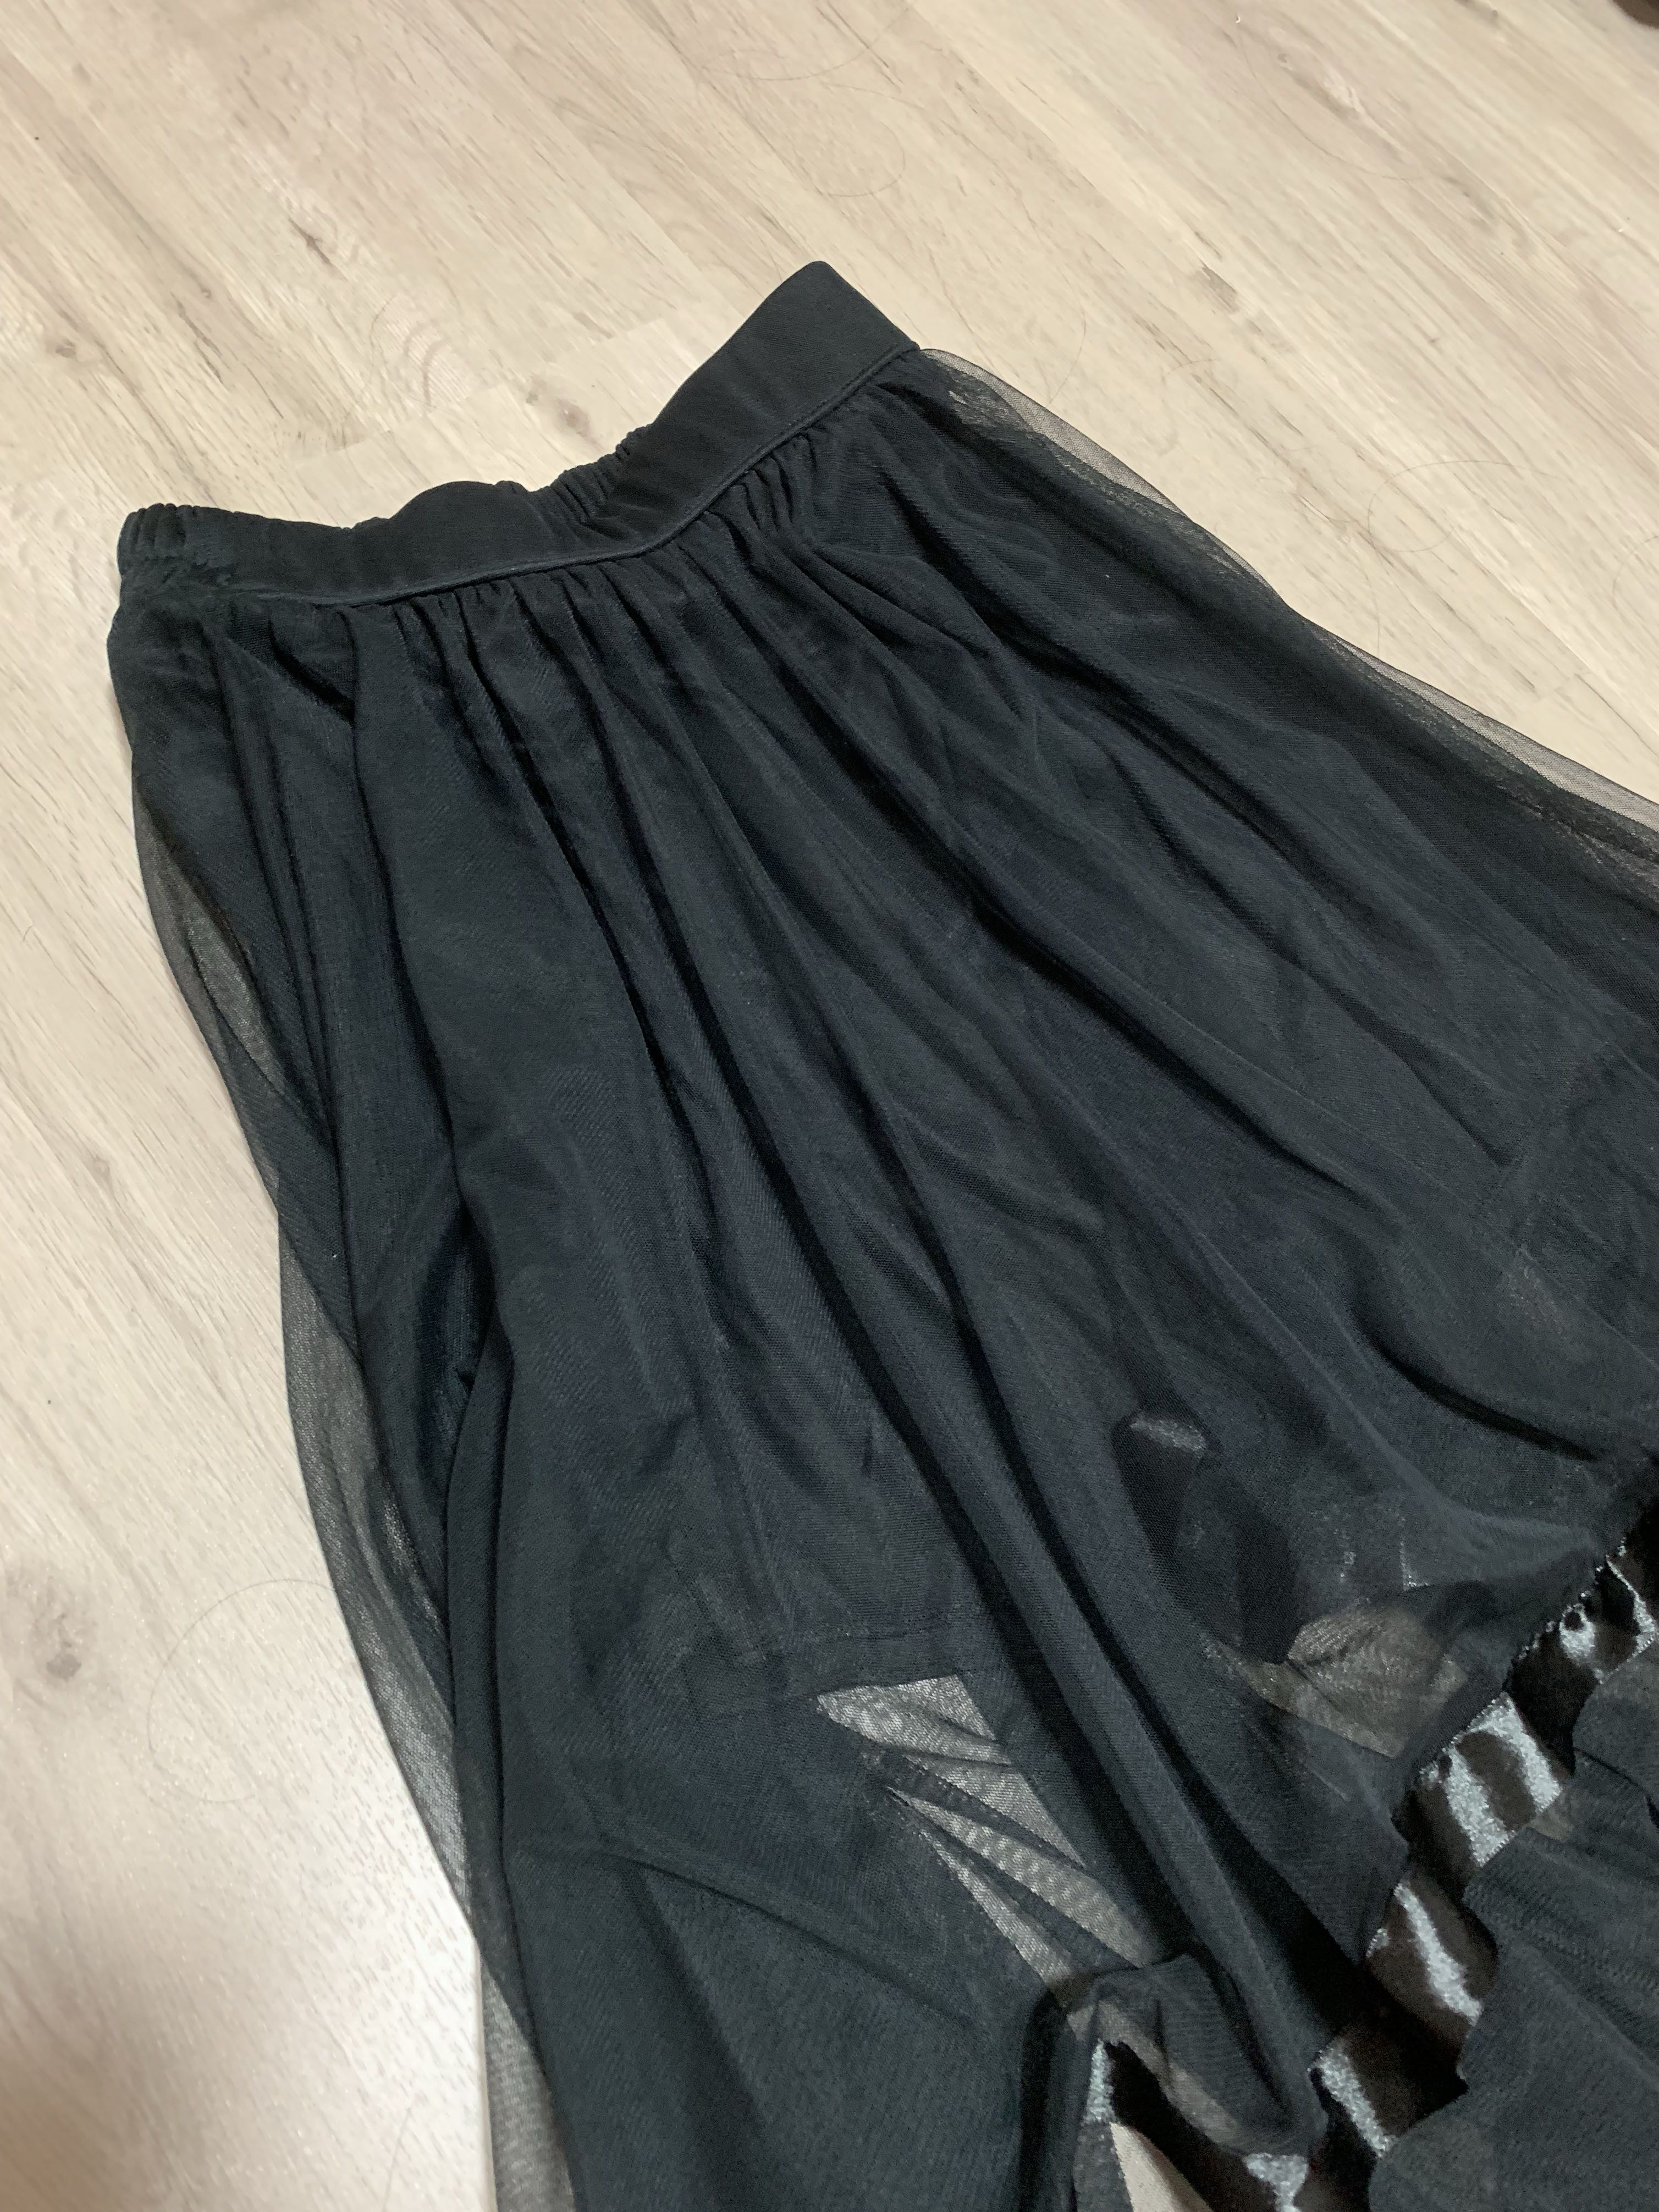 e8eca4318 Black chiffon maxi skirt, Women's Fashion, Clothes, Dresses & Skirts ...